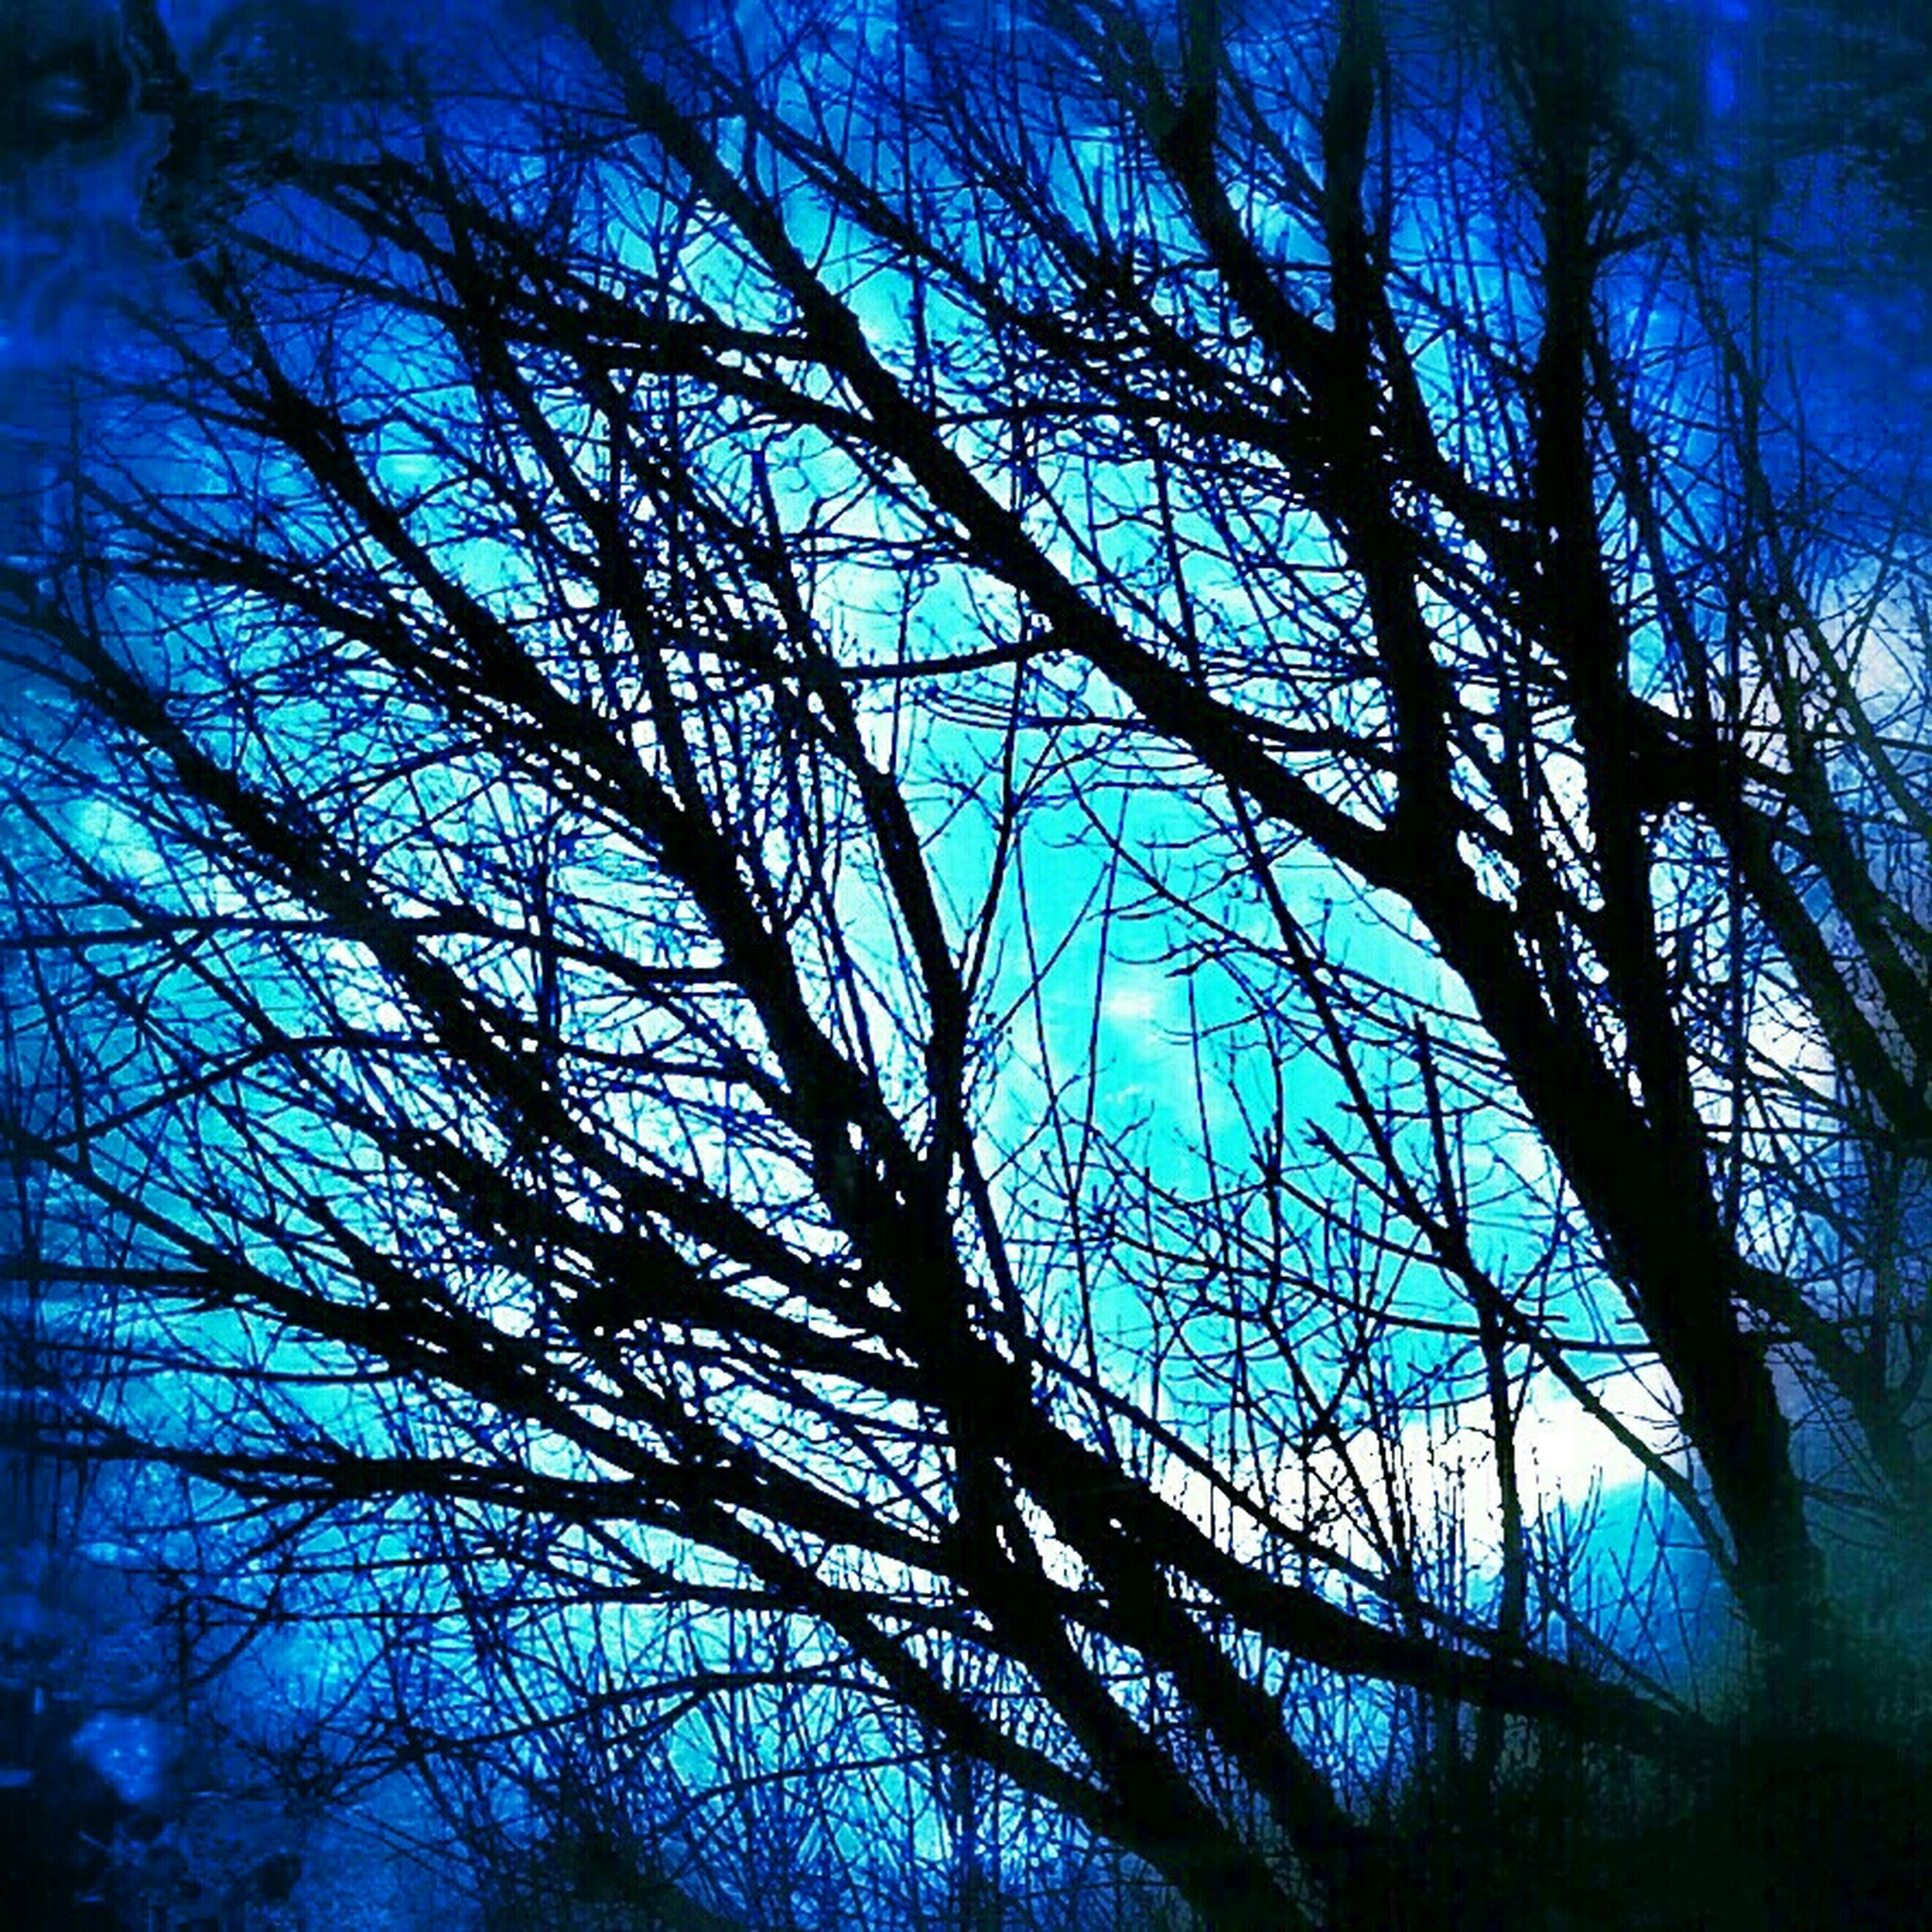 low angle view, bare tree, tree, branch, blue, silhouette, sky, nature, tranquility, backgrounds, full frame, outdoors, beauty in nature, no people, tree trunk, growth, day, scenics, clear sky, sunlight